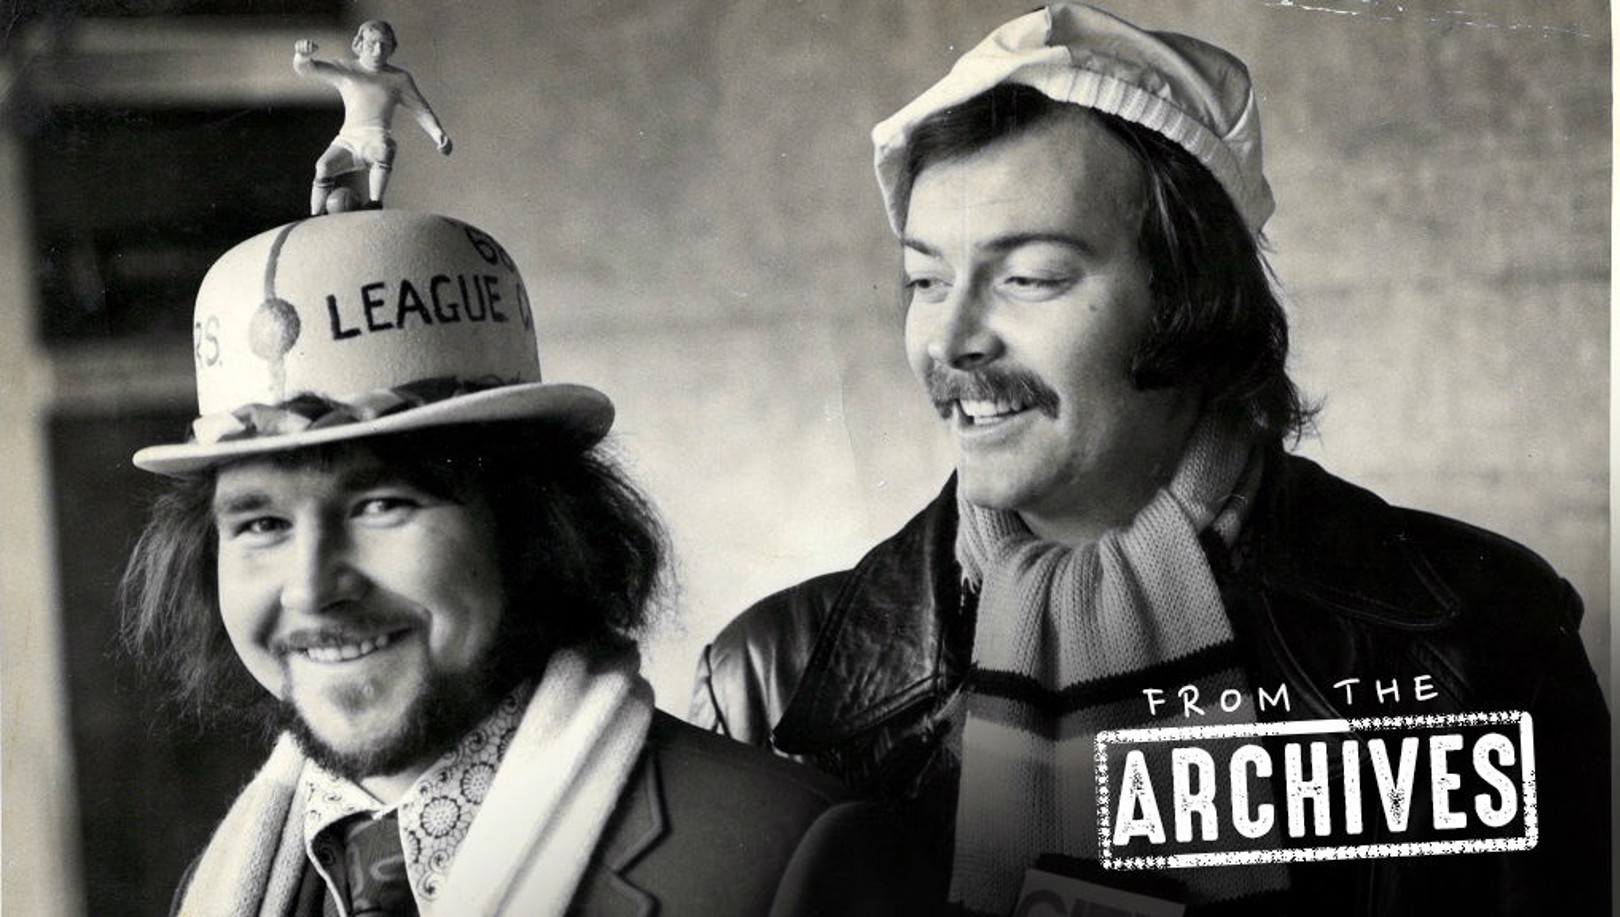 FROM THE ARCHIVES: A lucky Wembley hat!